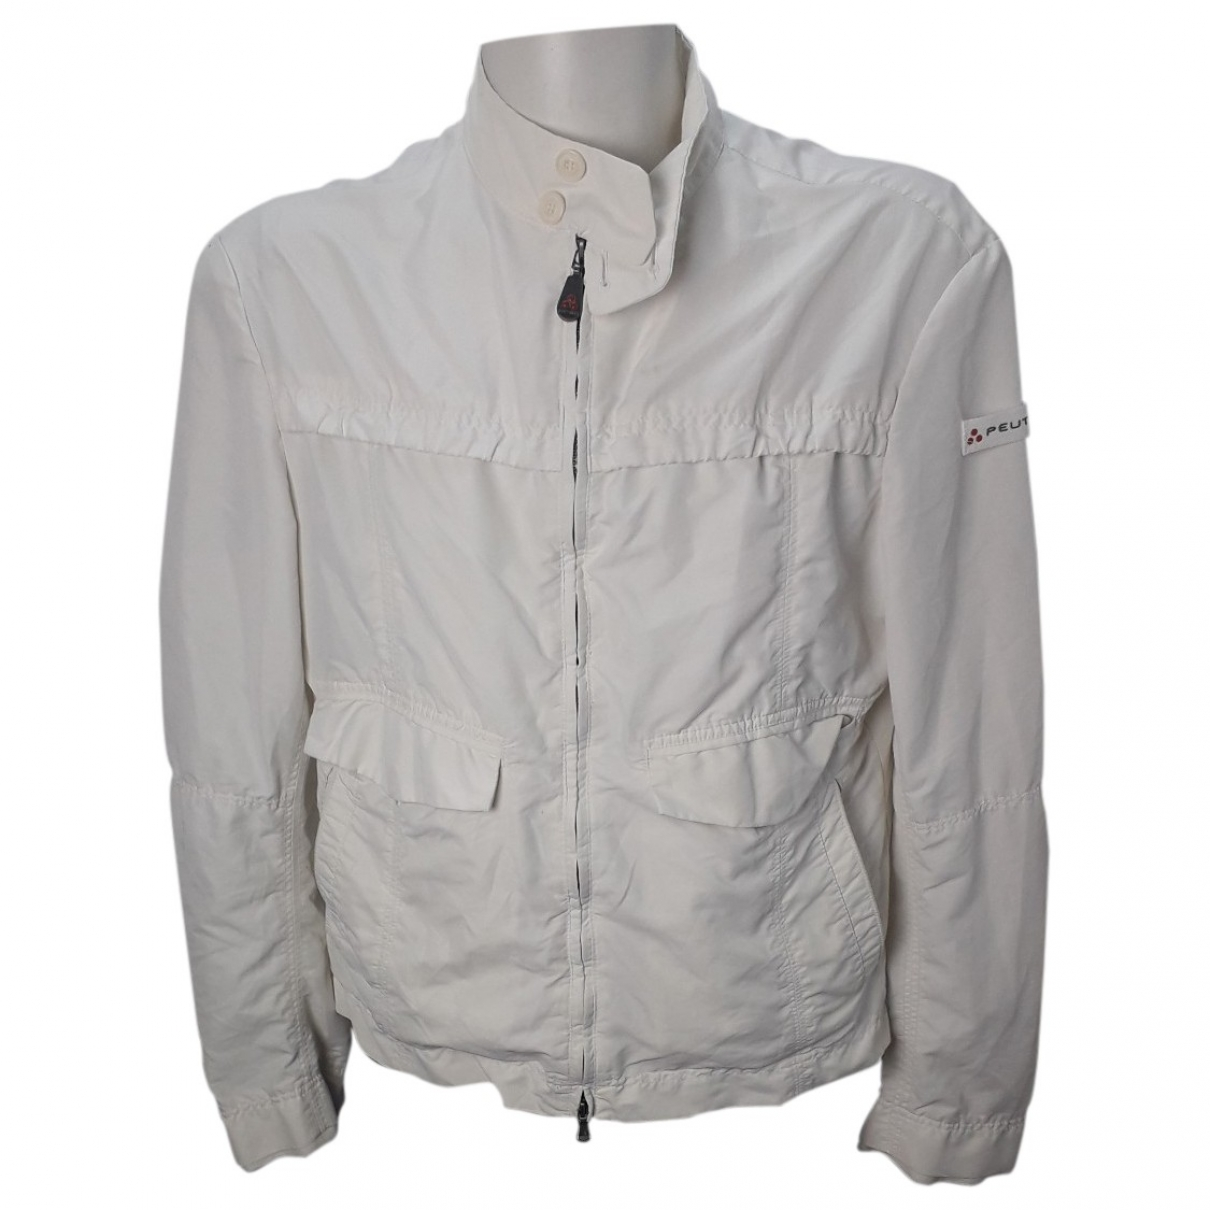 Peuterey \N Jacke in  Weiss Polyester